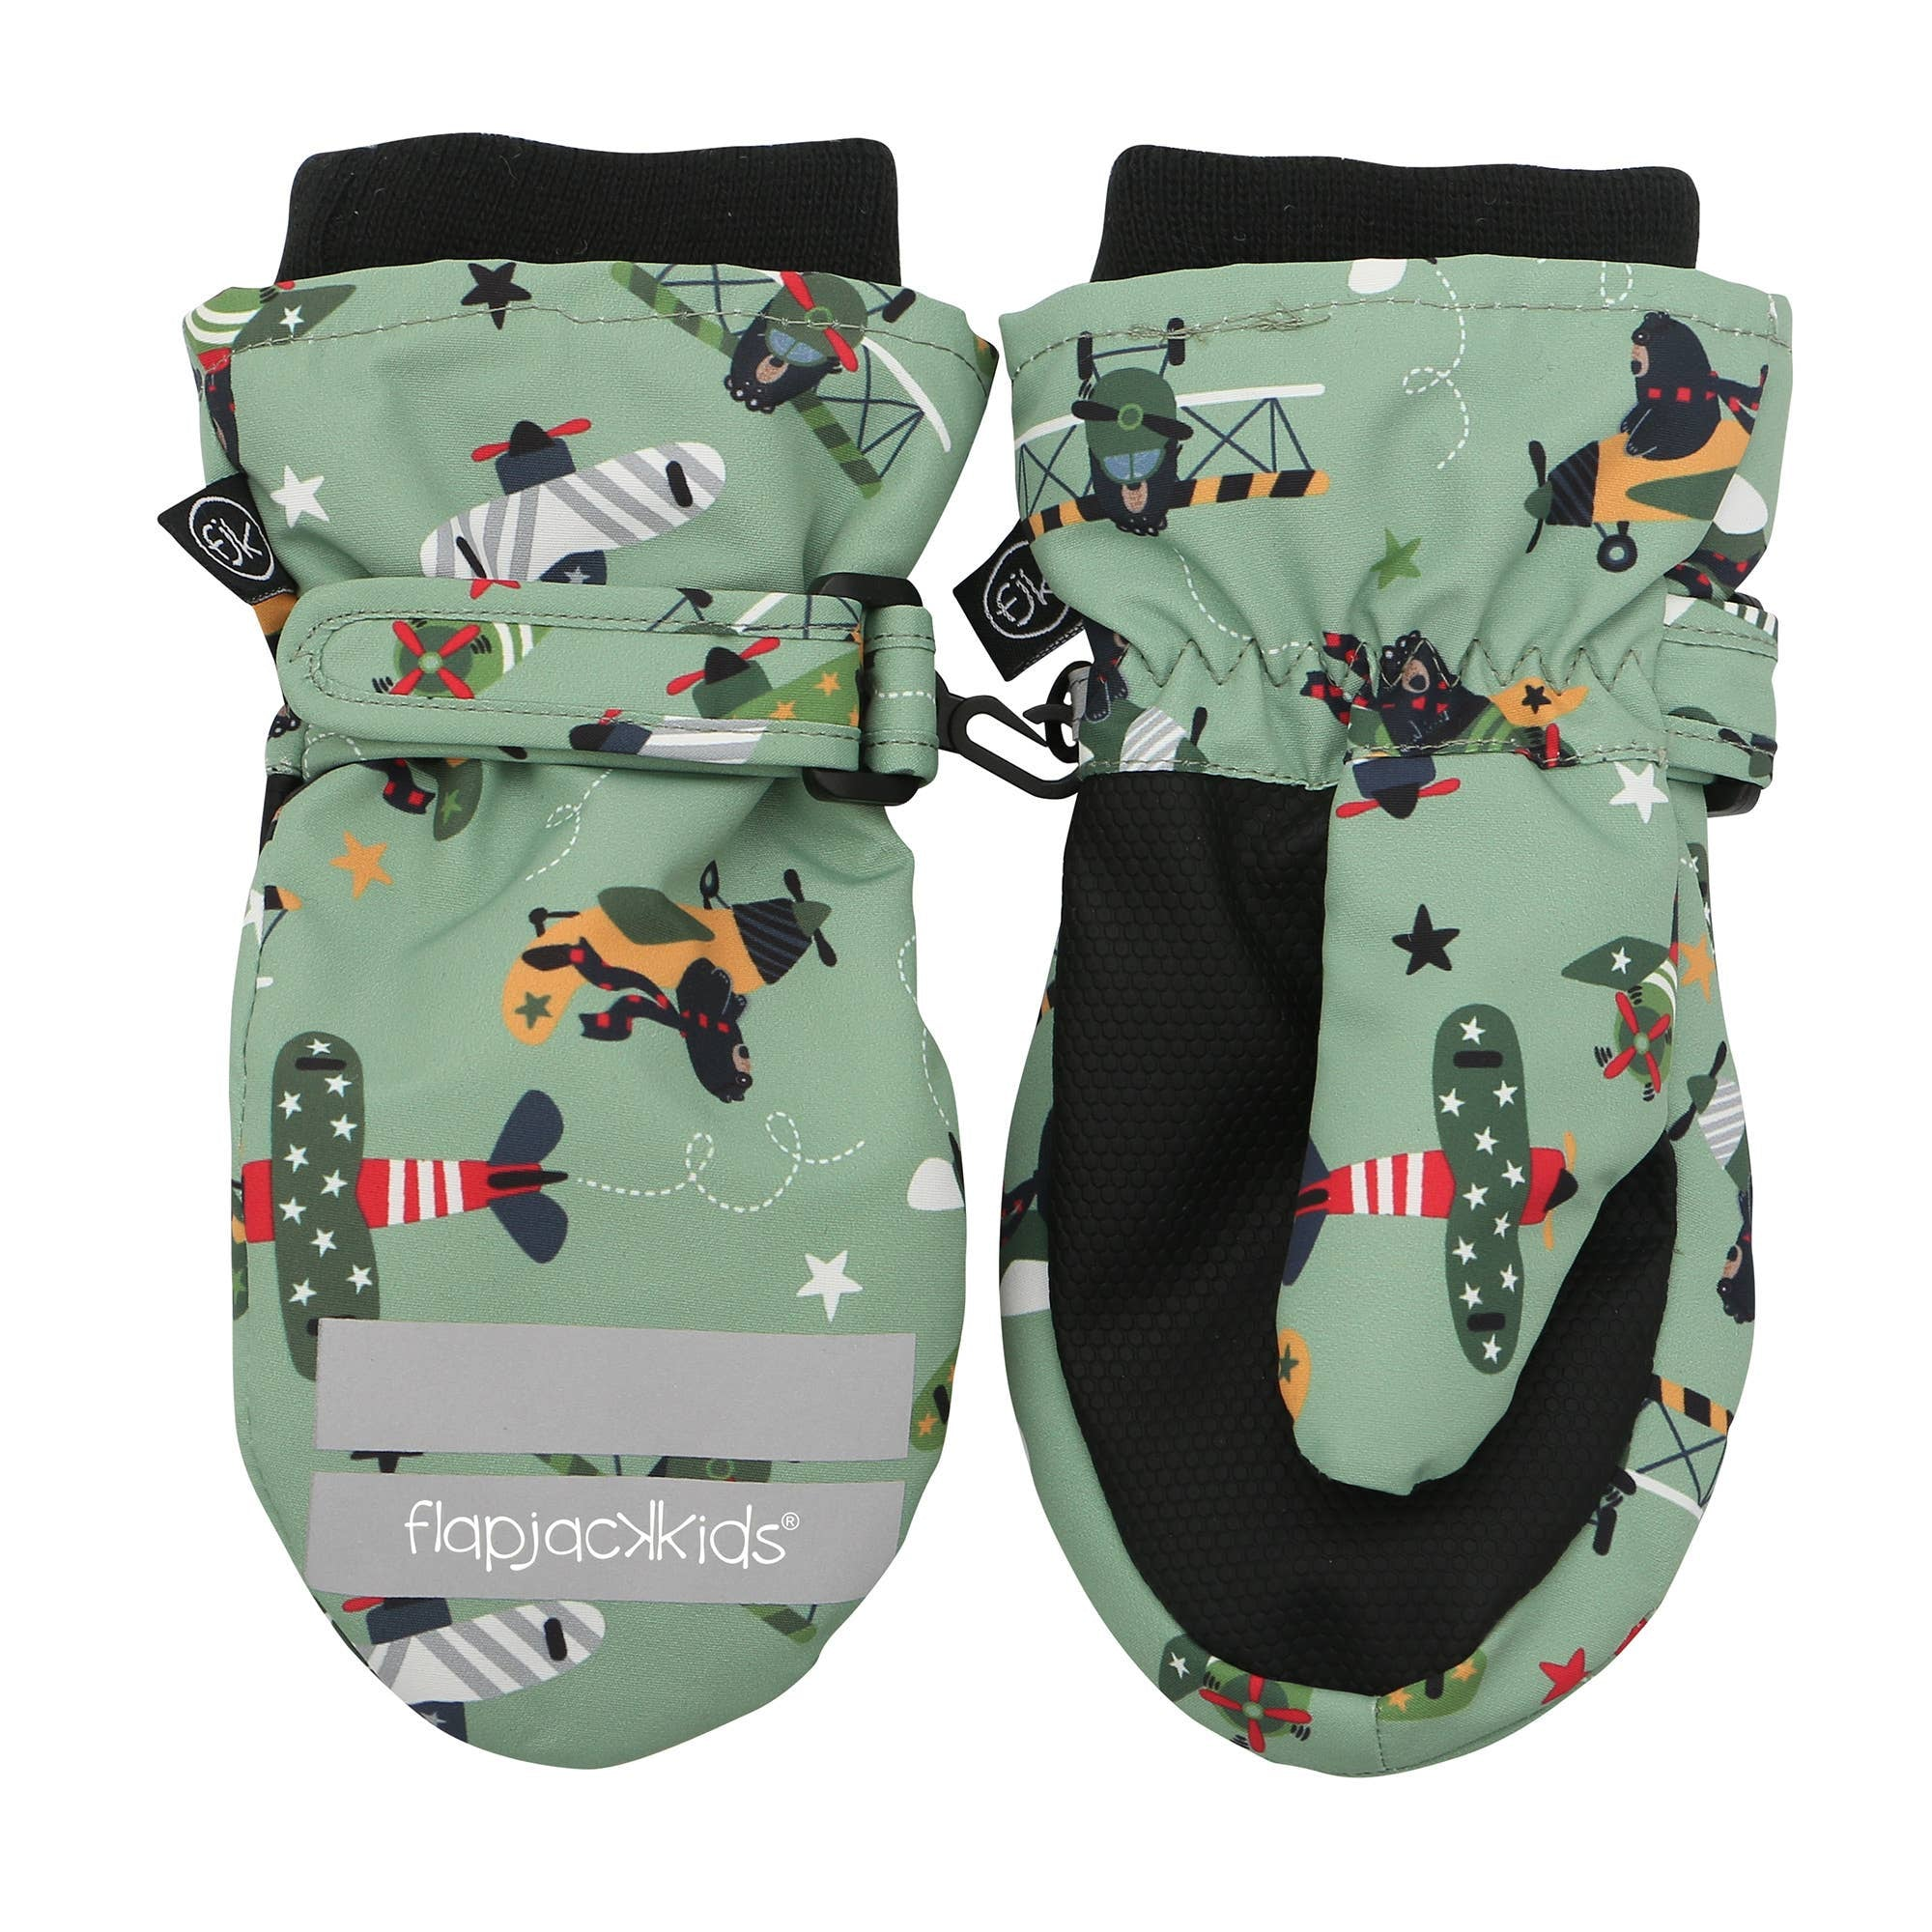 Flapjack Kids Ski Mittens - Green Black Bear